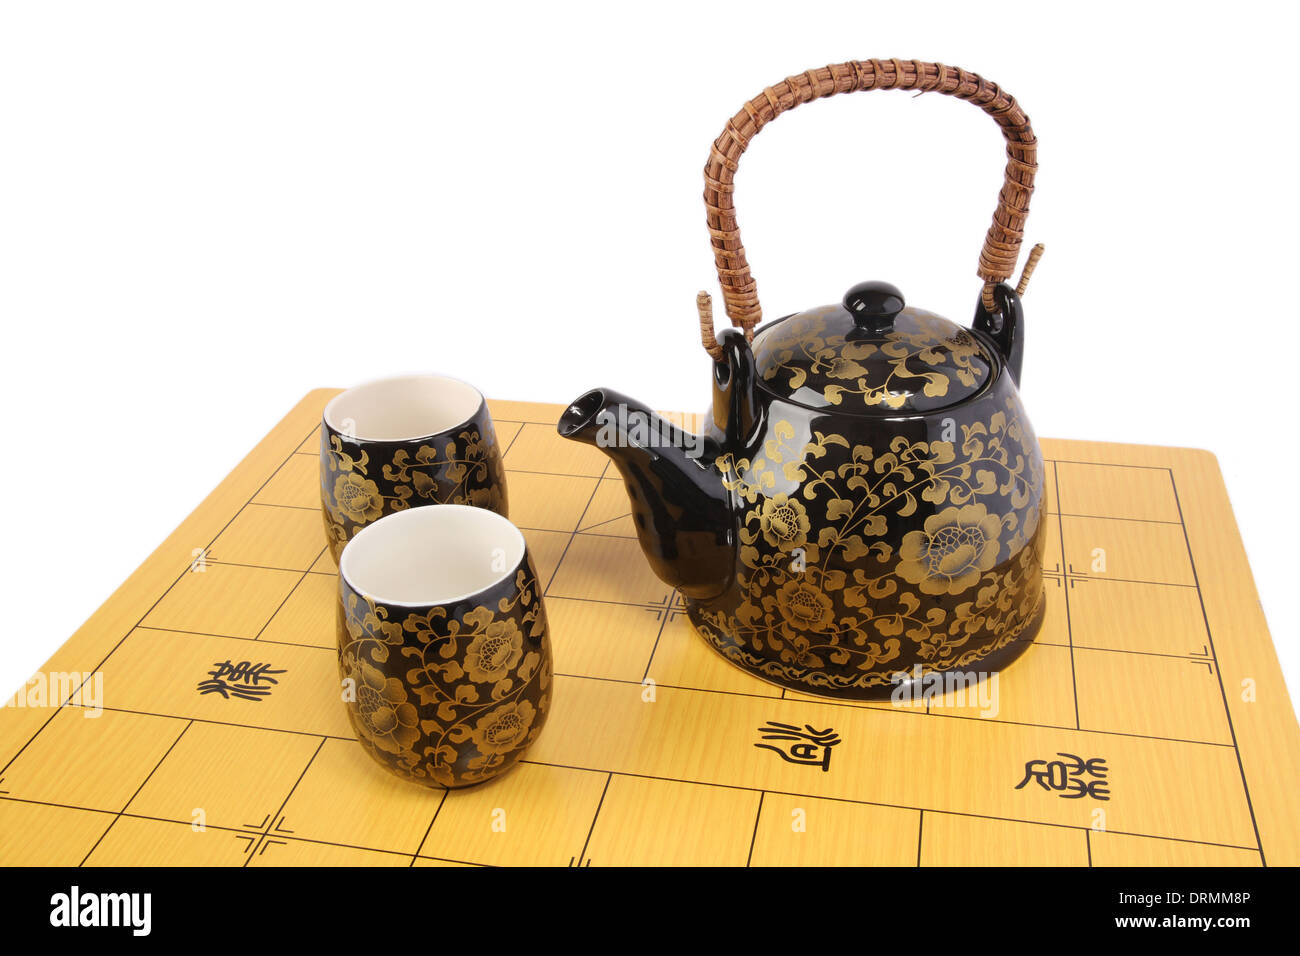 tea service on chessboard - Stock Image